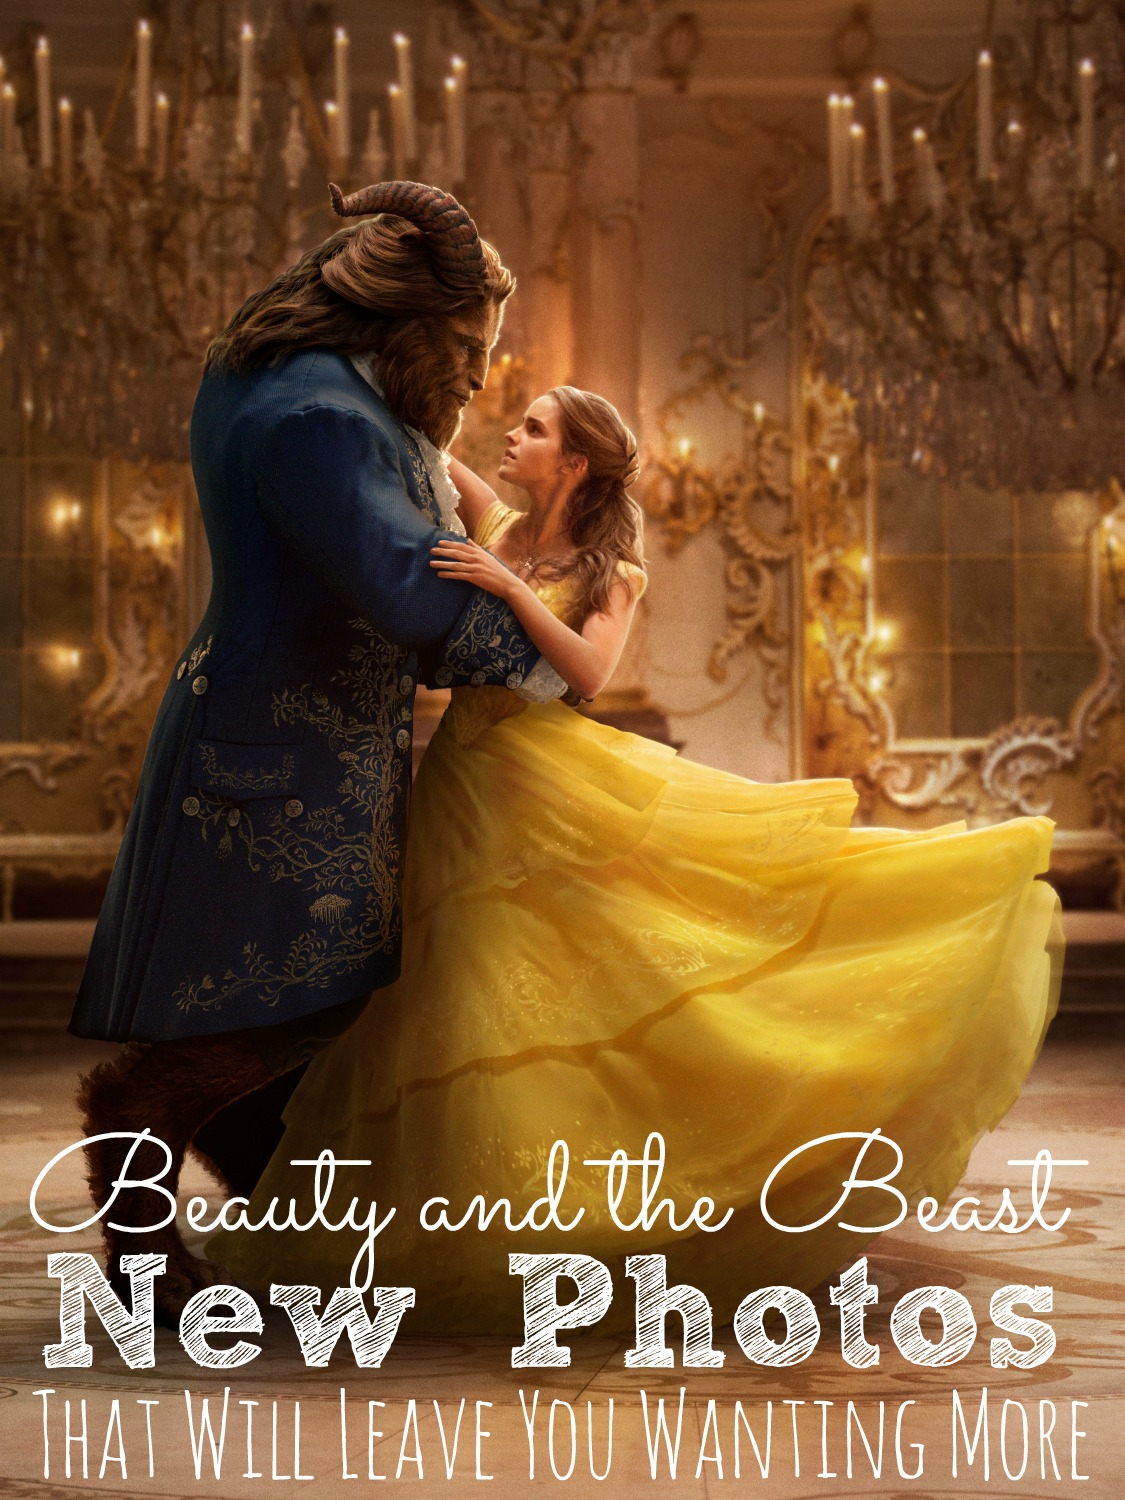 beauty-and-the-beast-new-photos-that-will-leave-you-wanting-more